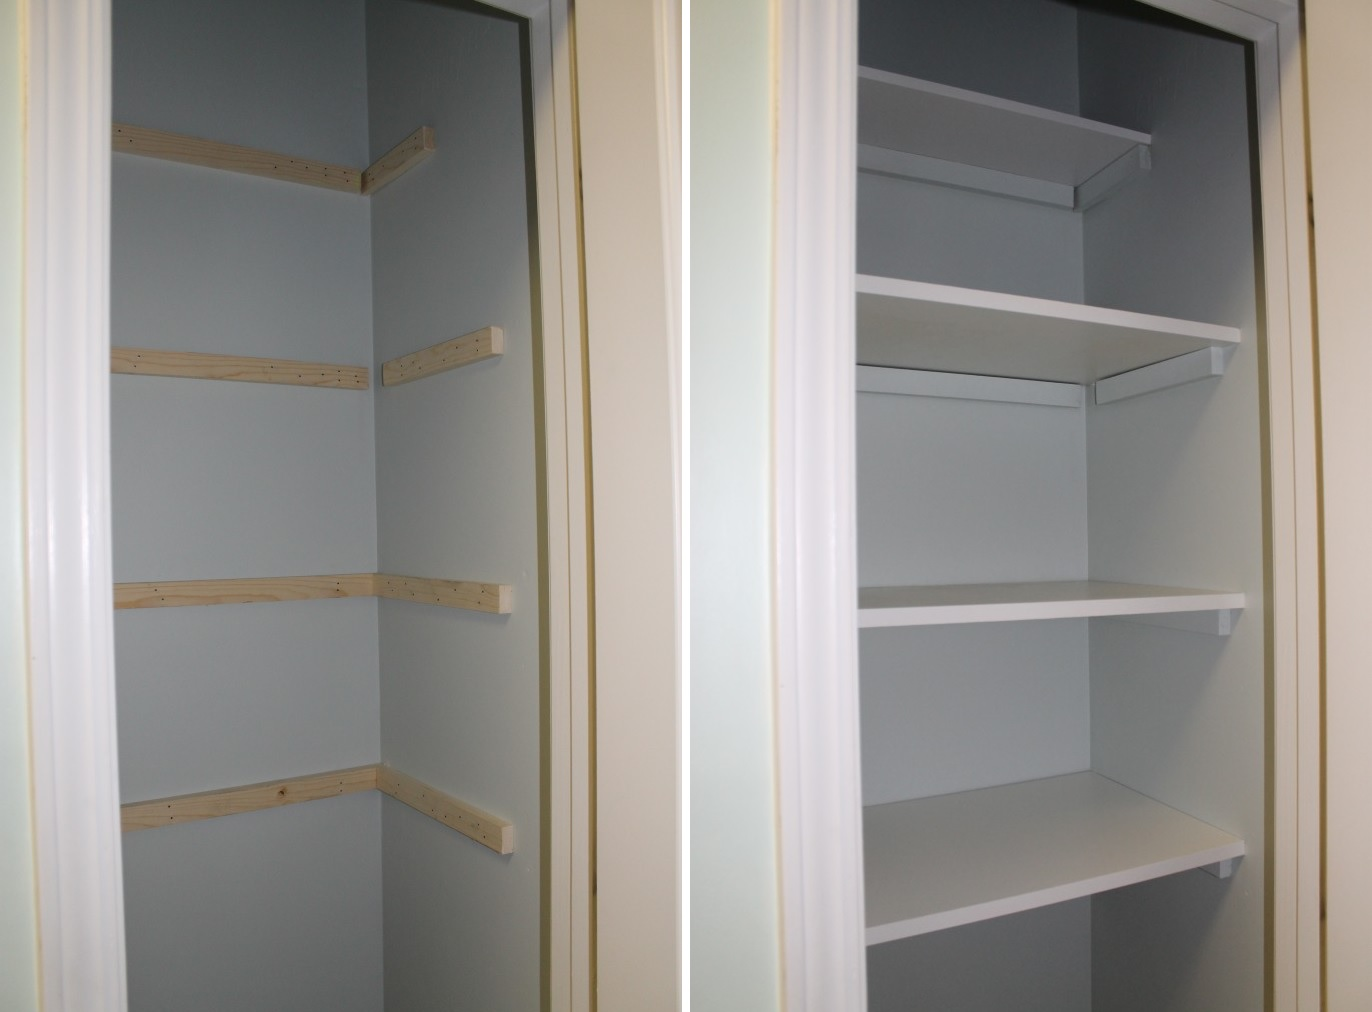 Closet Shelves How To Customize A Closet For Improved Storage Capacity